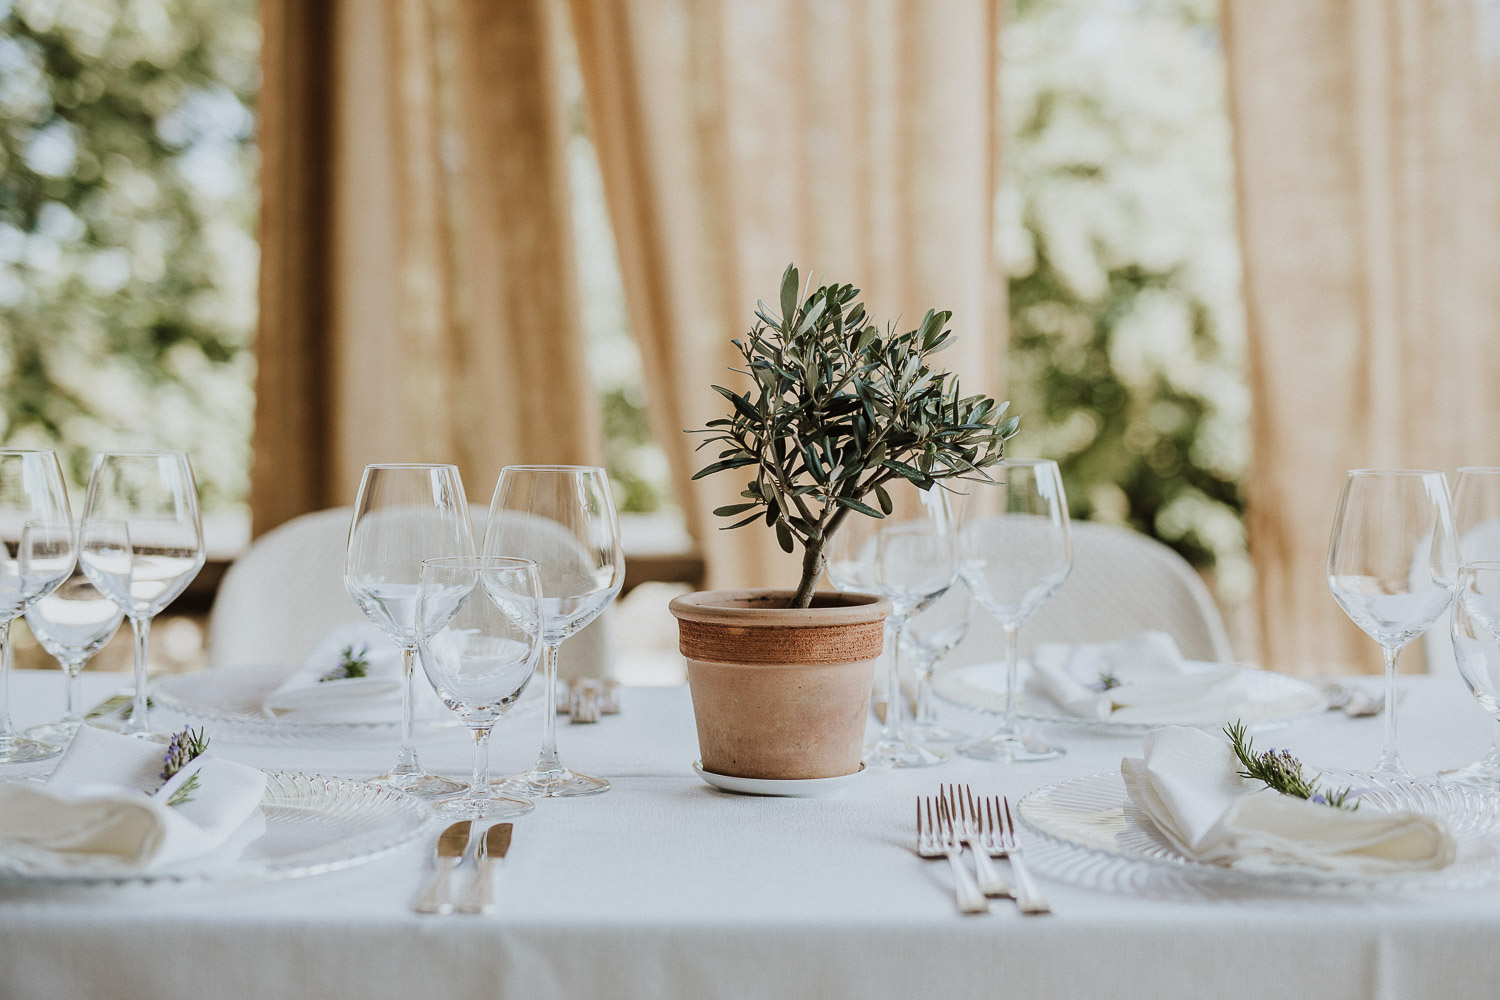 Olives plant centerpieces for a wedding at Castello di Tassara, in Italy